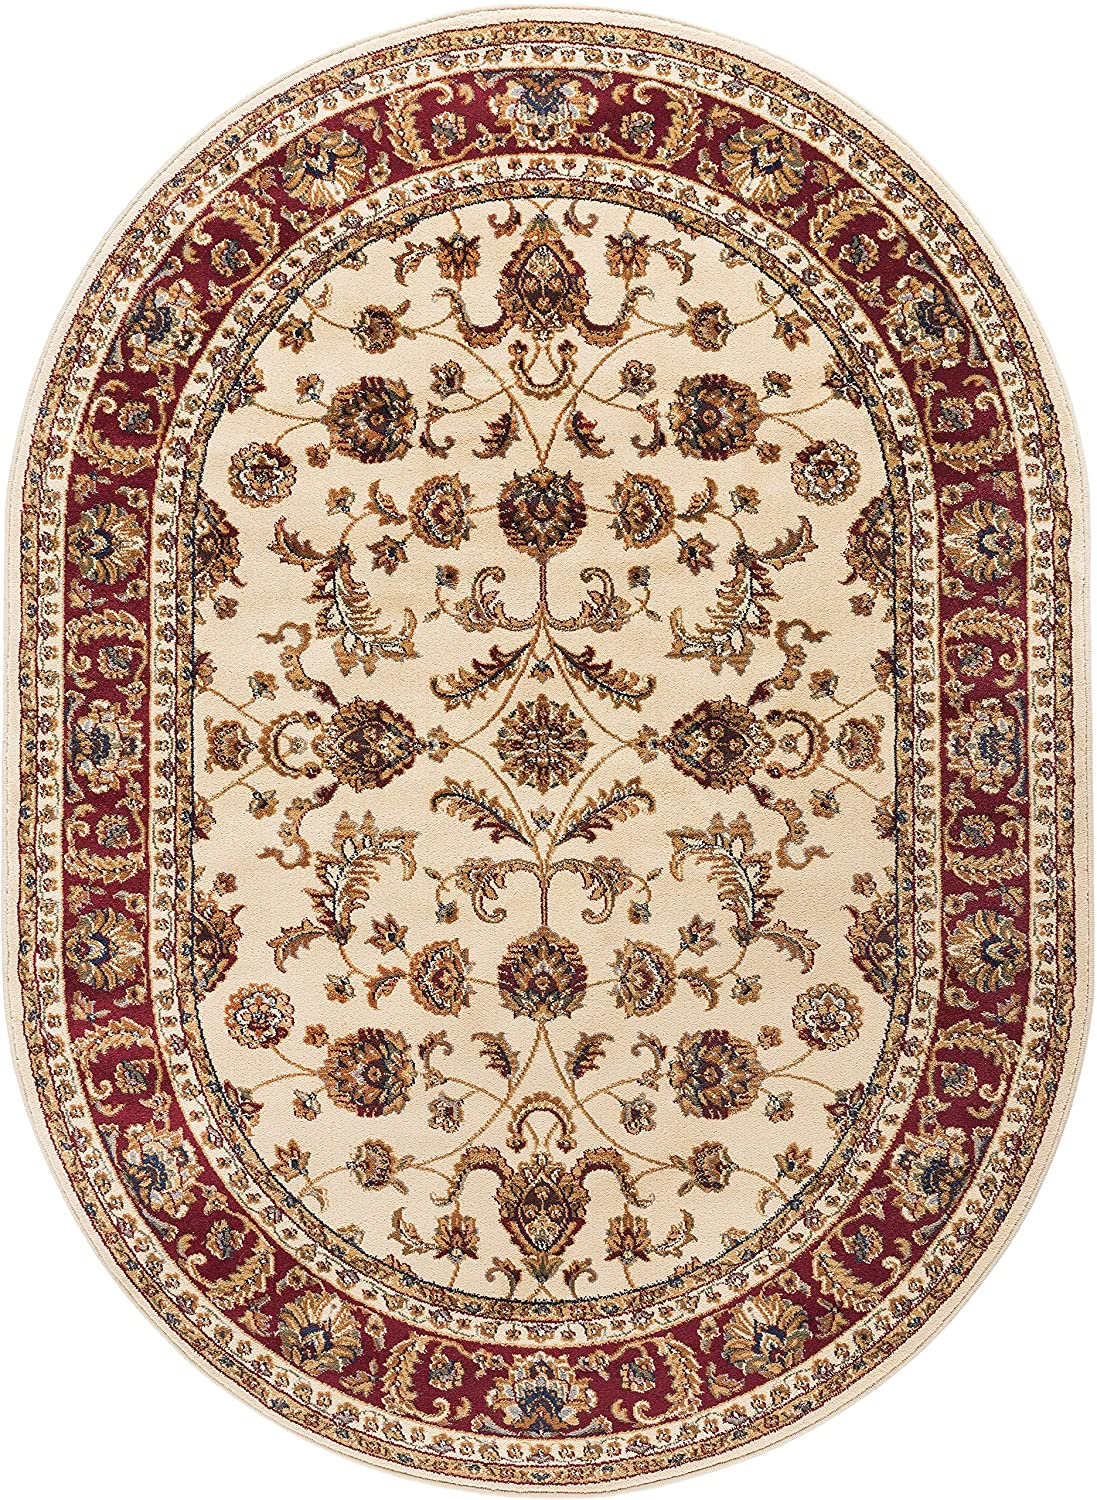 Universal Rugs 4792 Sensation Transitional Area Rug, 2 by 3-Feet, Beige SNS4792 2x3